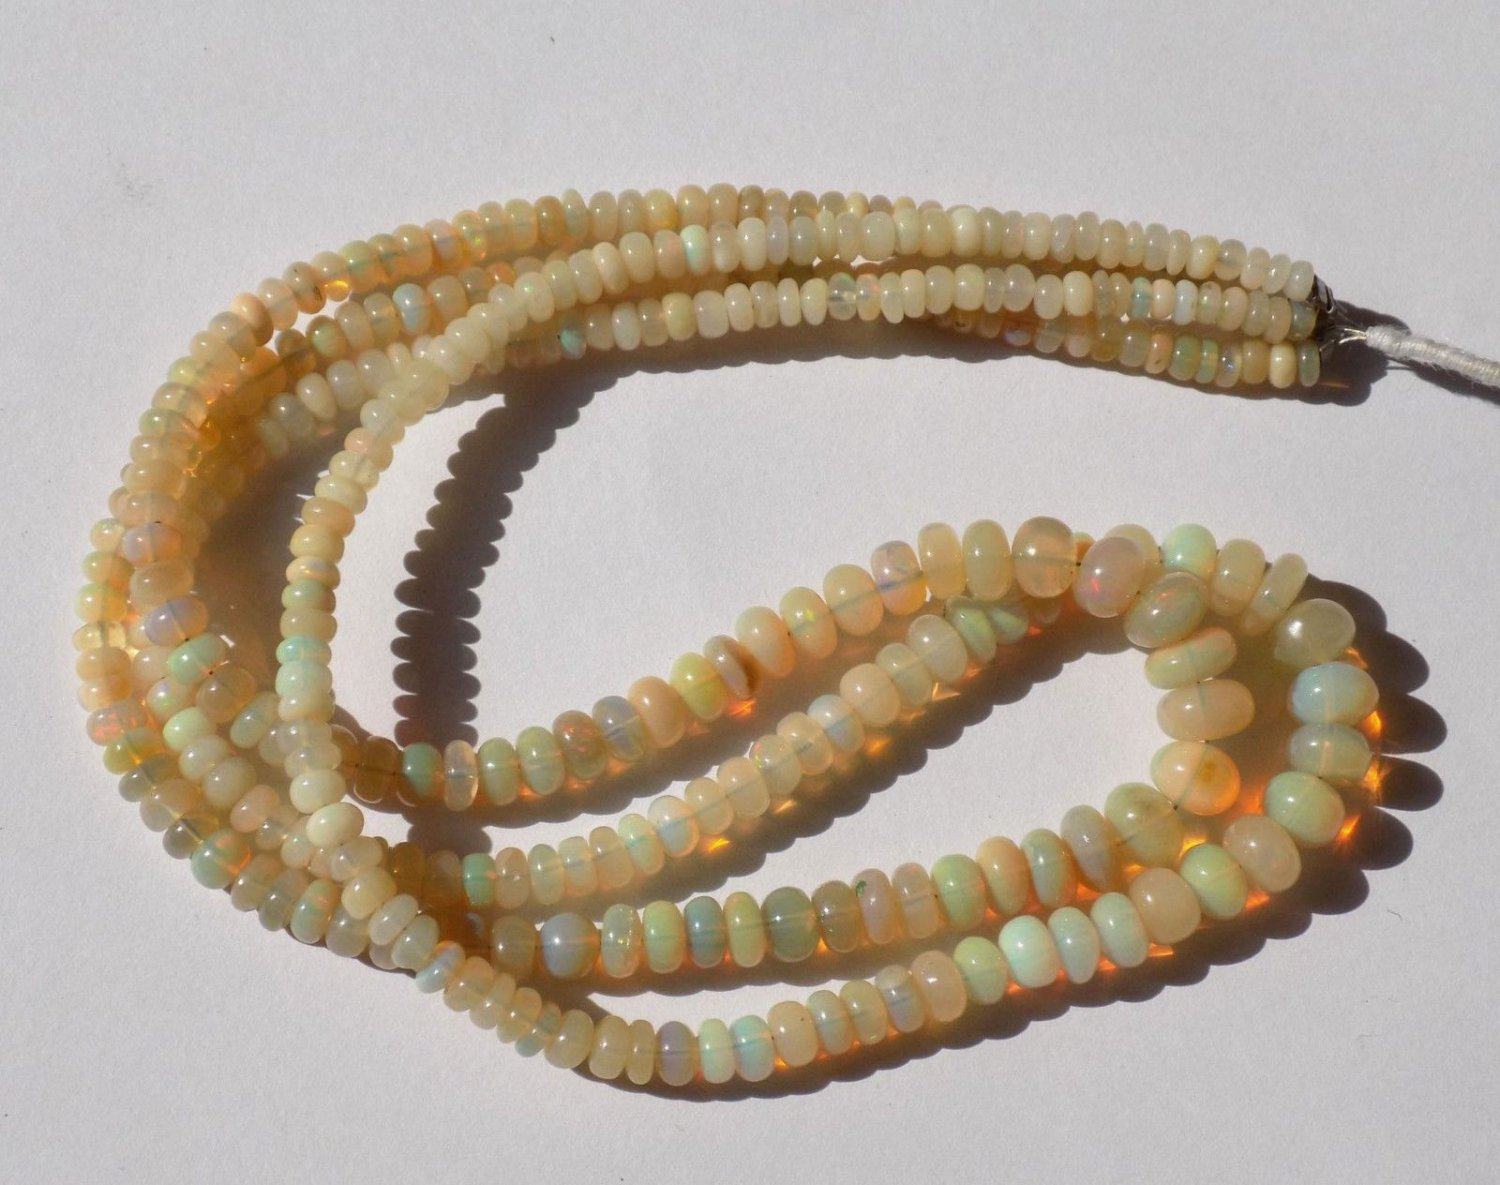 """1 Strand Natural Ethiopian Opal Smooth Rondelle Gemstone Beads 3.5-7mm 16"""" Long"""